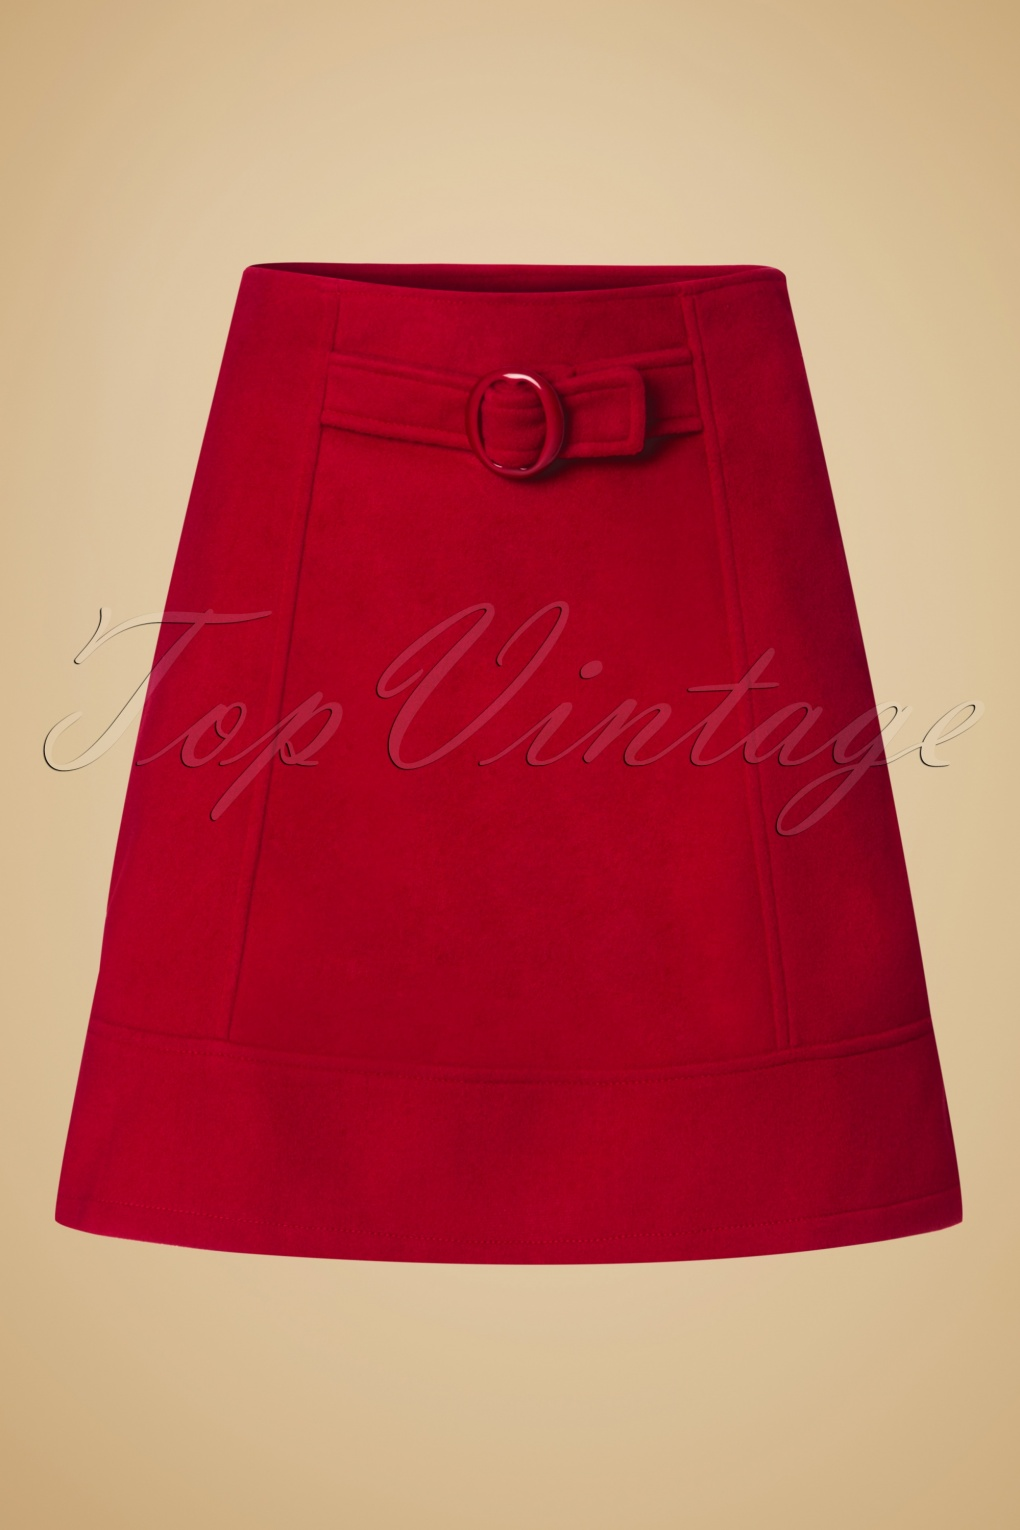 Retro Skirts: Vintage, Pencil, Circle, & Plus Sizes 60s Dare to wear A-Line Skirt in Red £25.22 AT vintagedancer.com